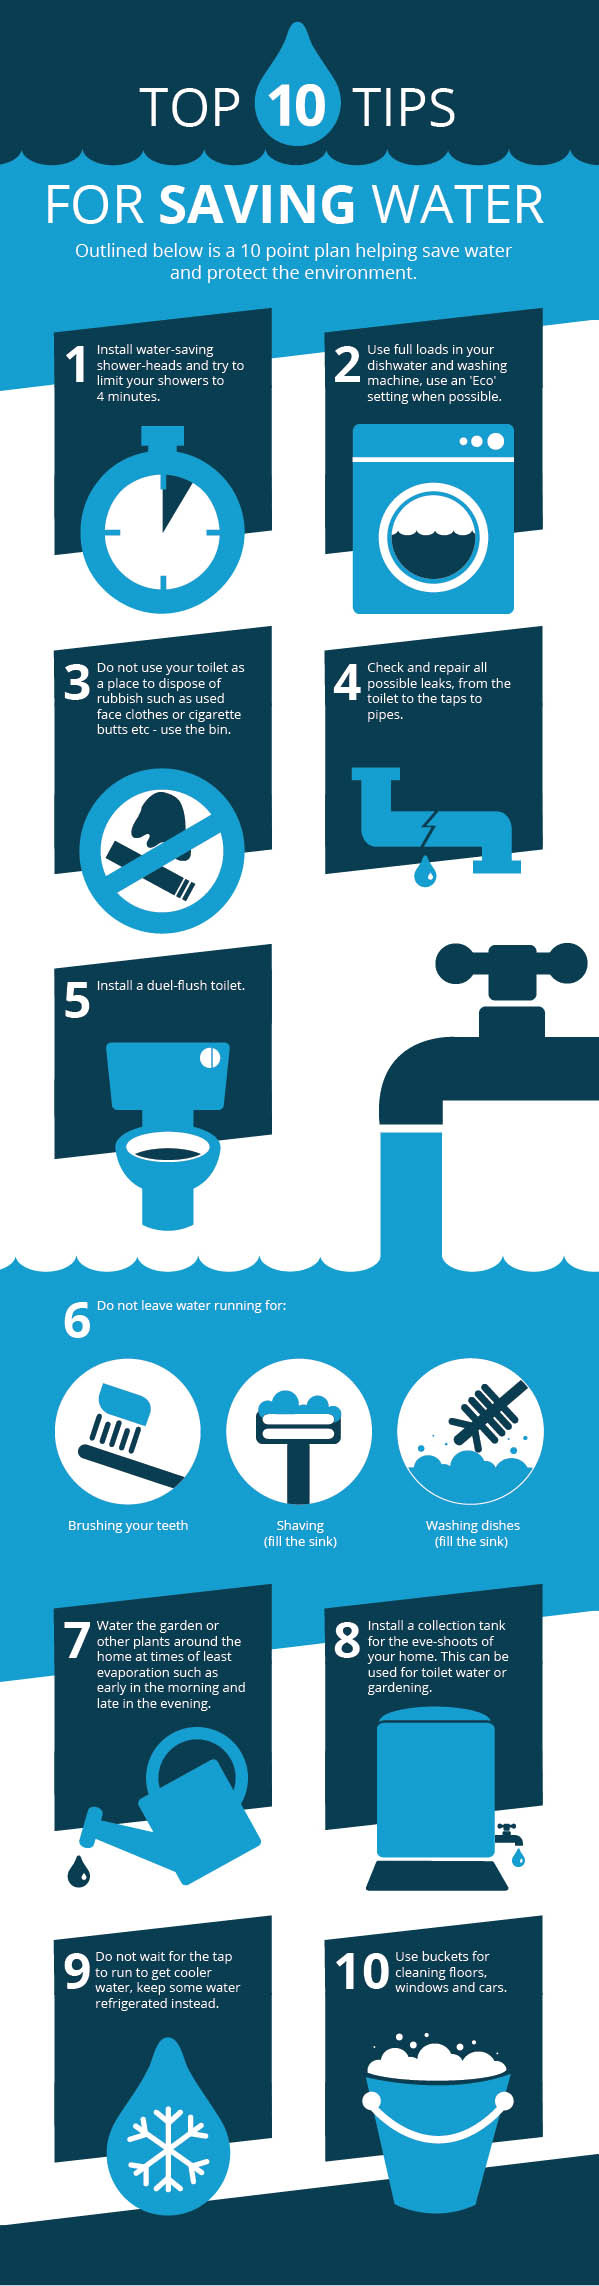 saving water, water saving tips, saving home water, water tips, water saving tips, infographic, reader submission, drought, city drought, drought issues, California drought, India drought, saving water in the home